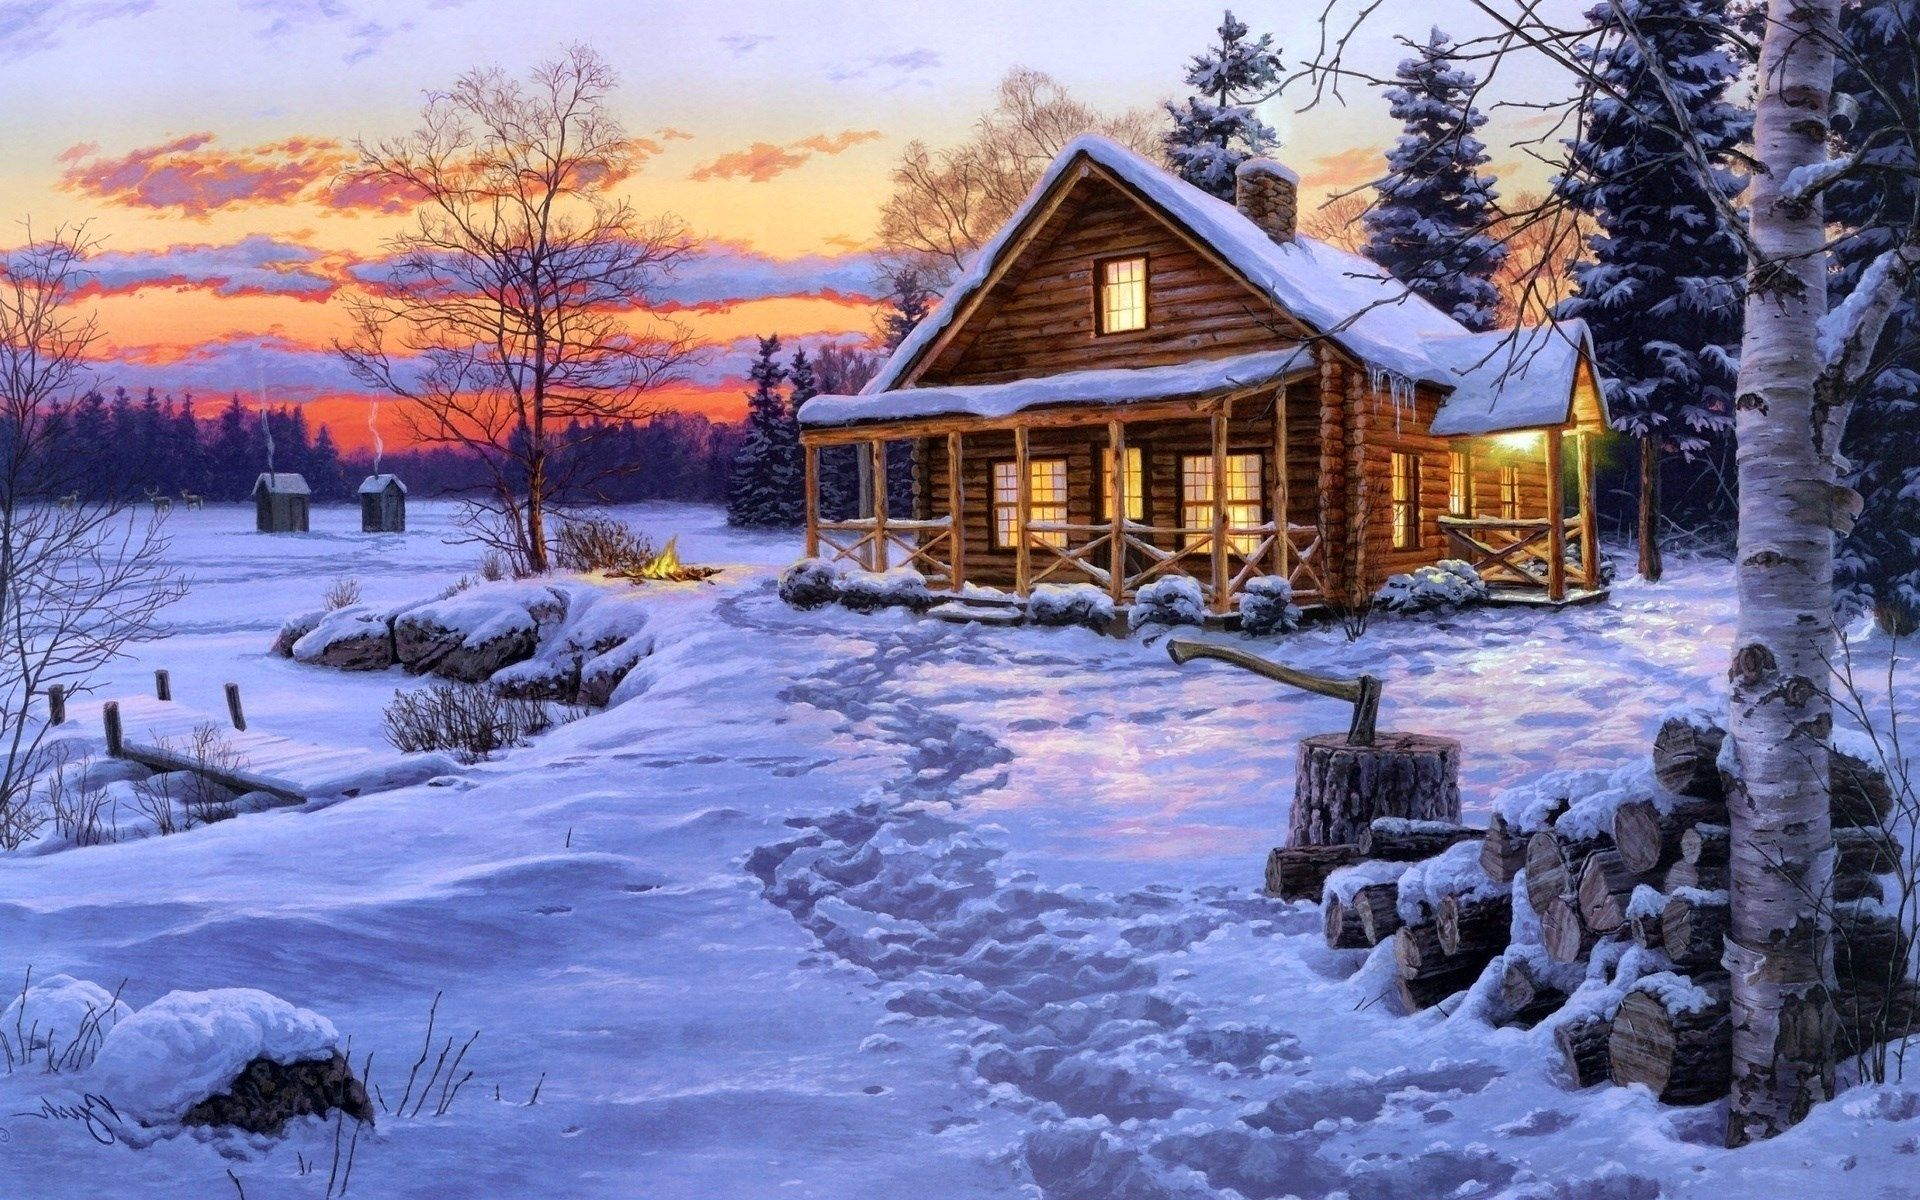 Log Cabin Landscape Wallpapers Top Free Log Cabin Landscape Backgrounds Wallpaperaccess